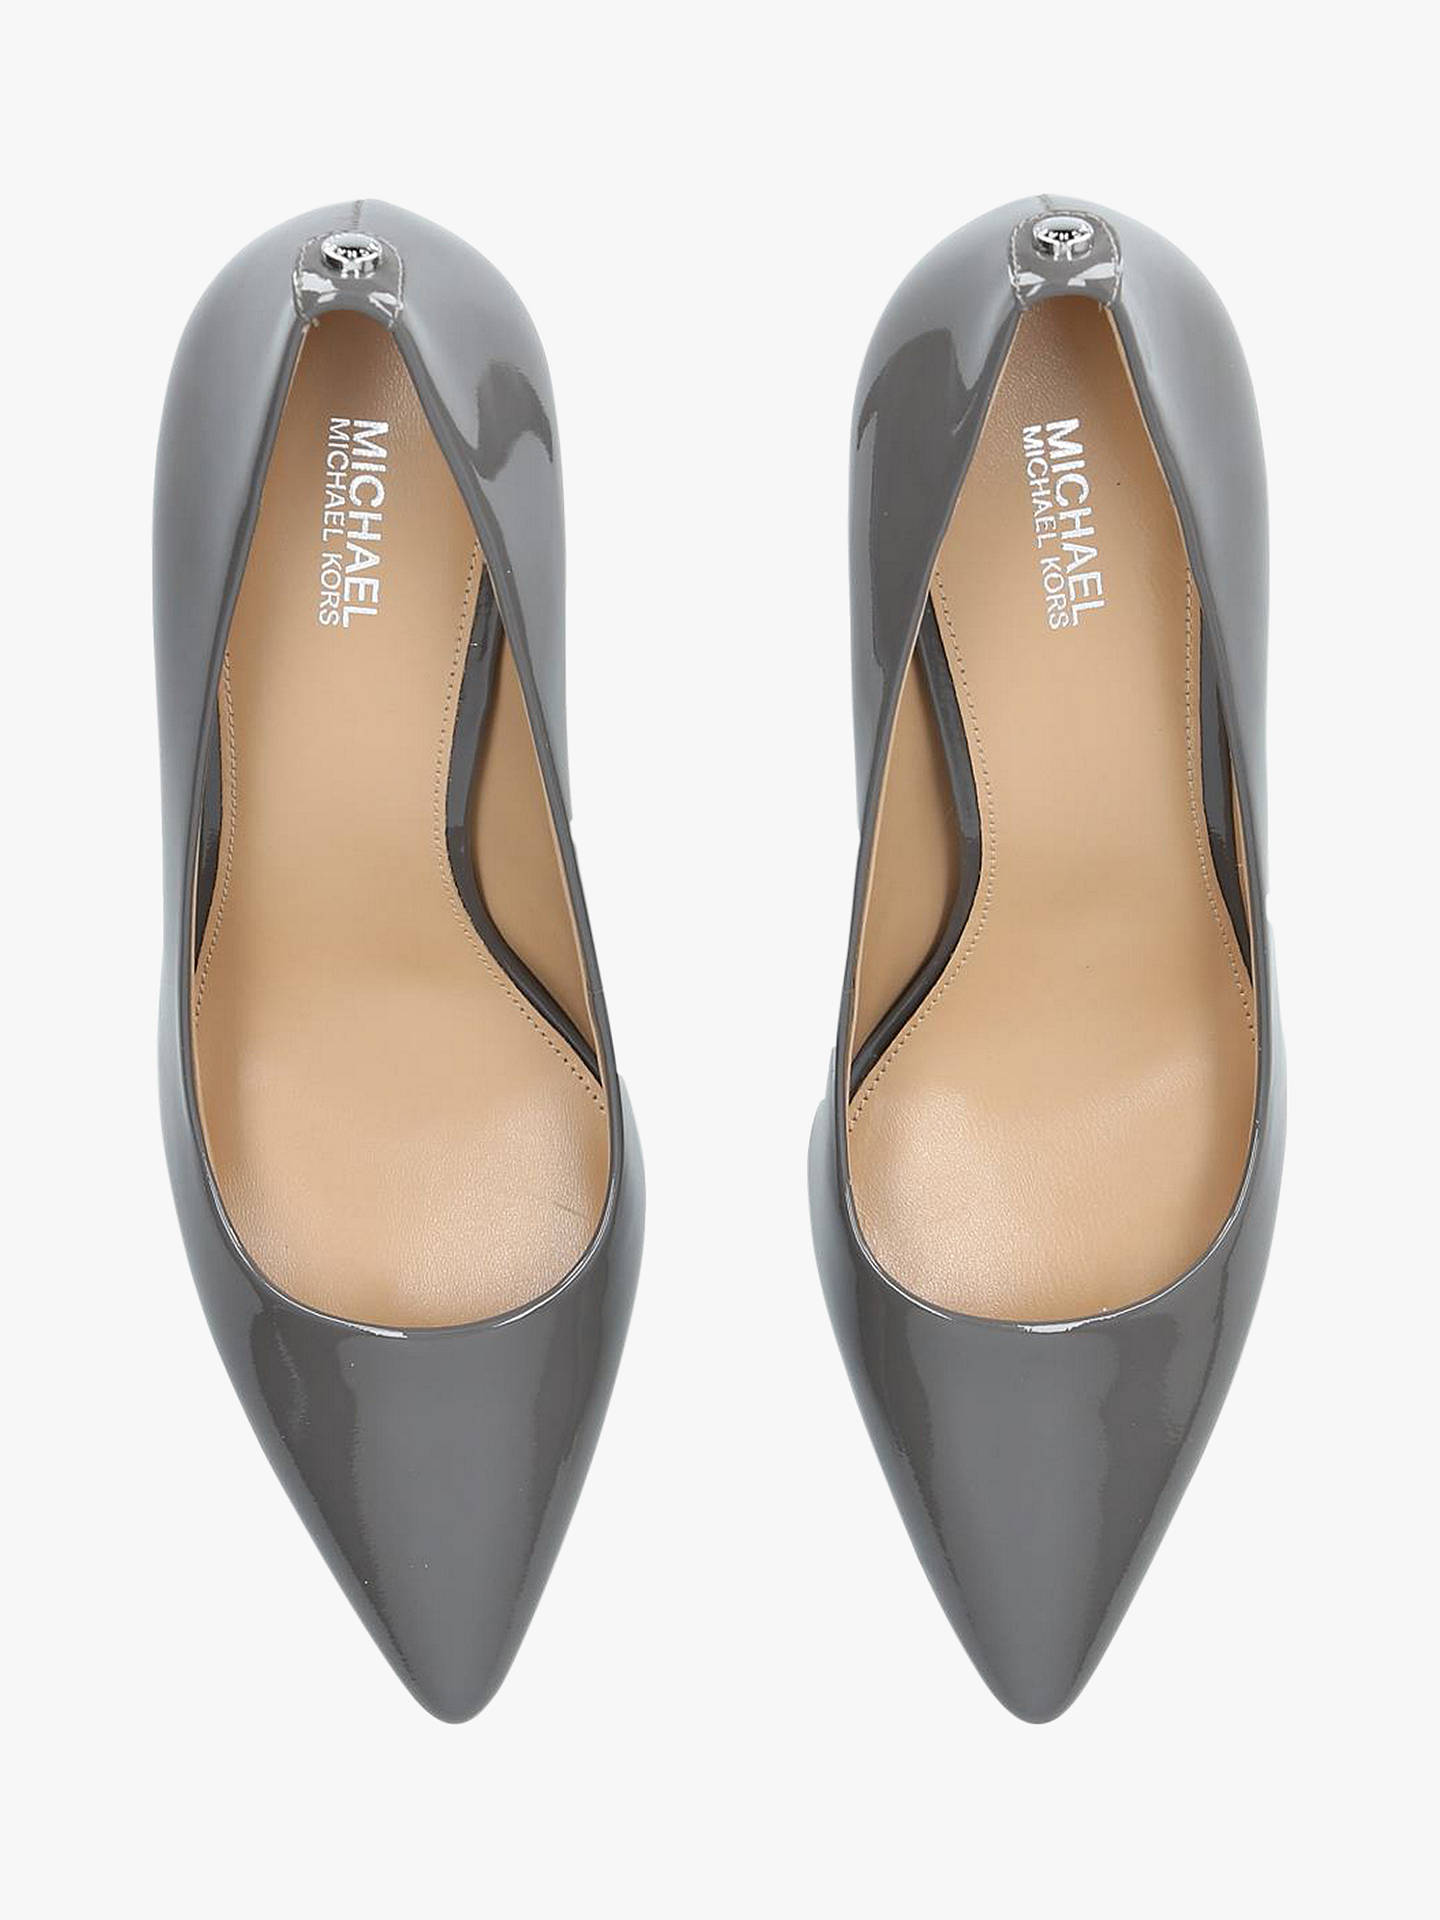 5d8436f171 ... Buy MICHAEL Michael Kors Dorothy Flex Pointed Court Shoes, Grey Patent,  2 Online at ...